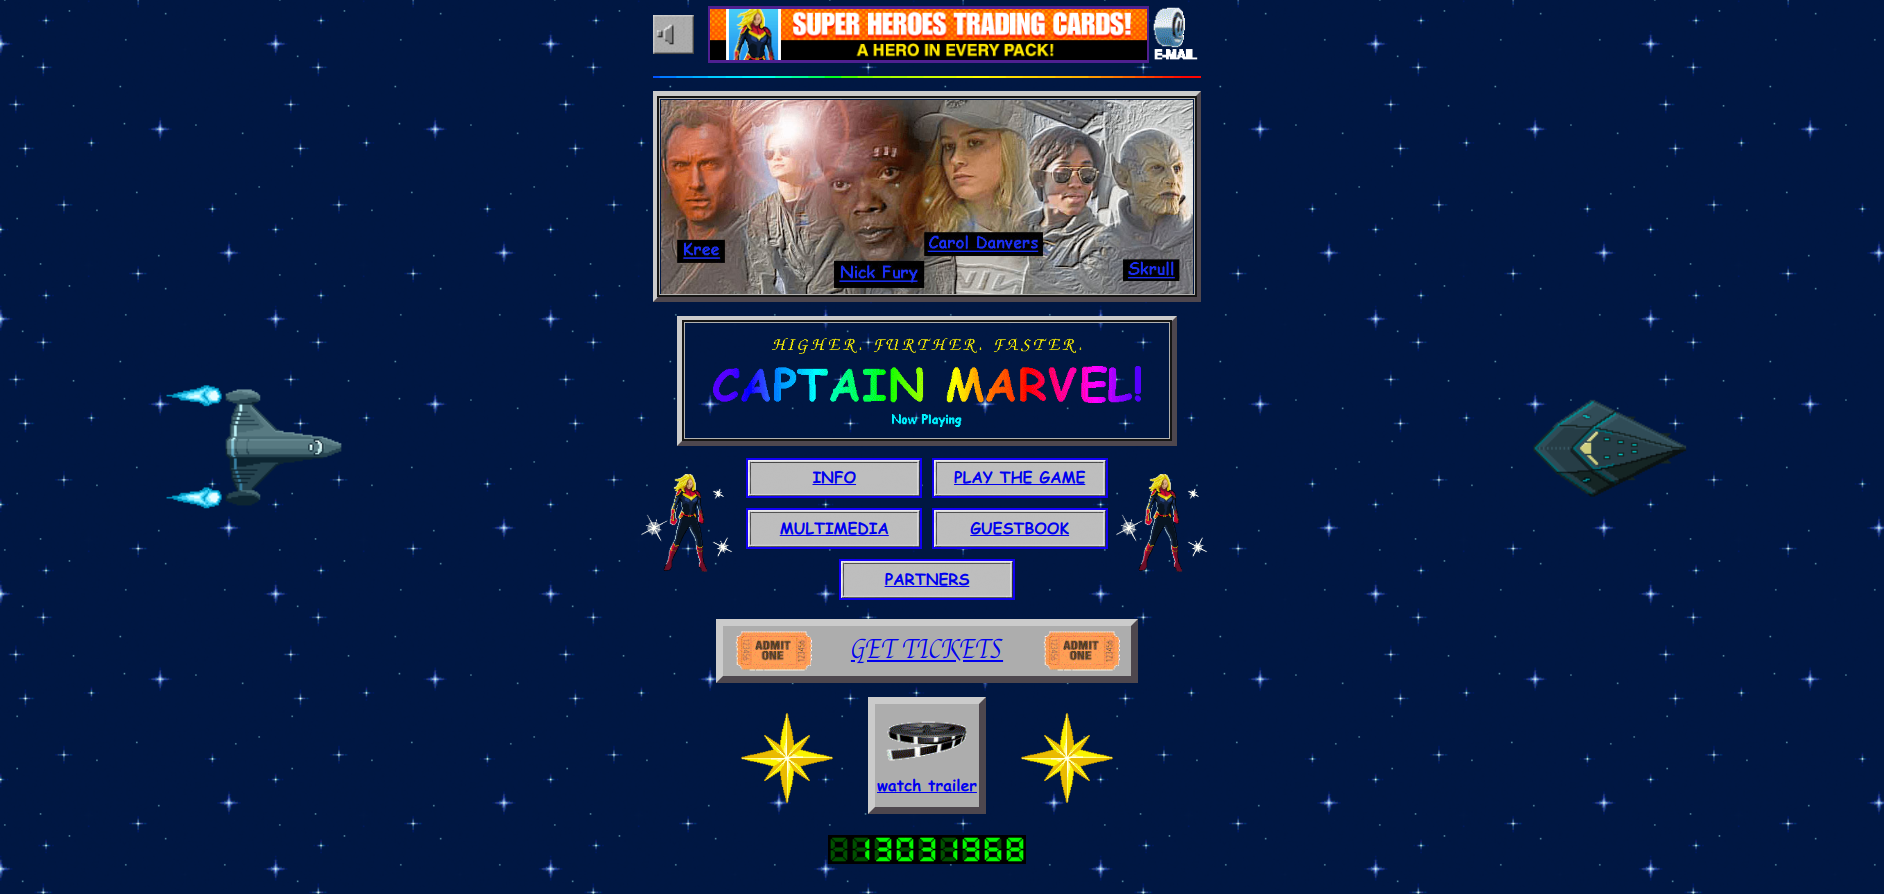 Captain Marvel's 90s landing page